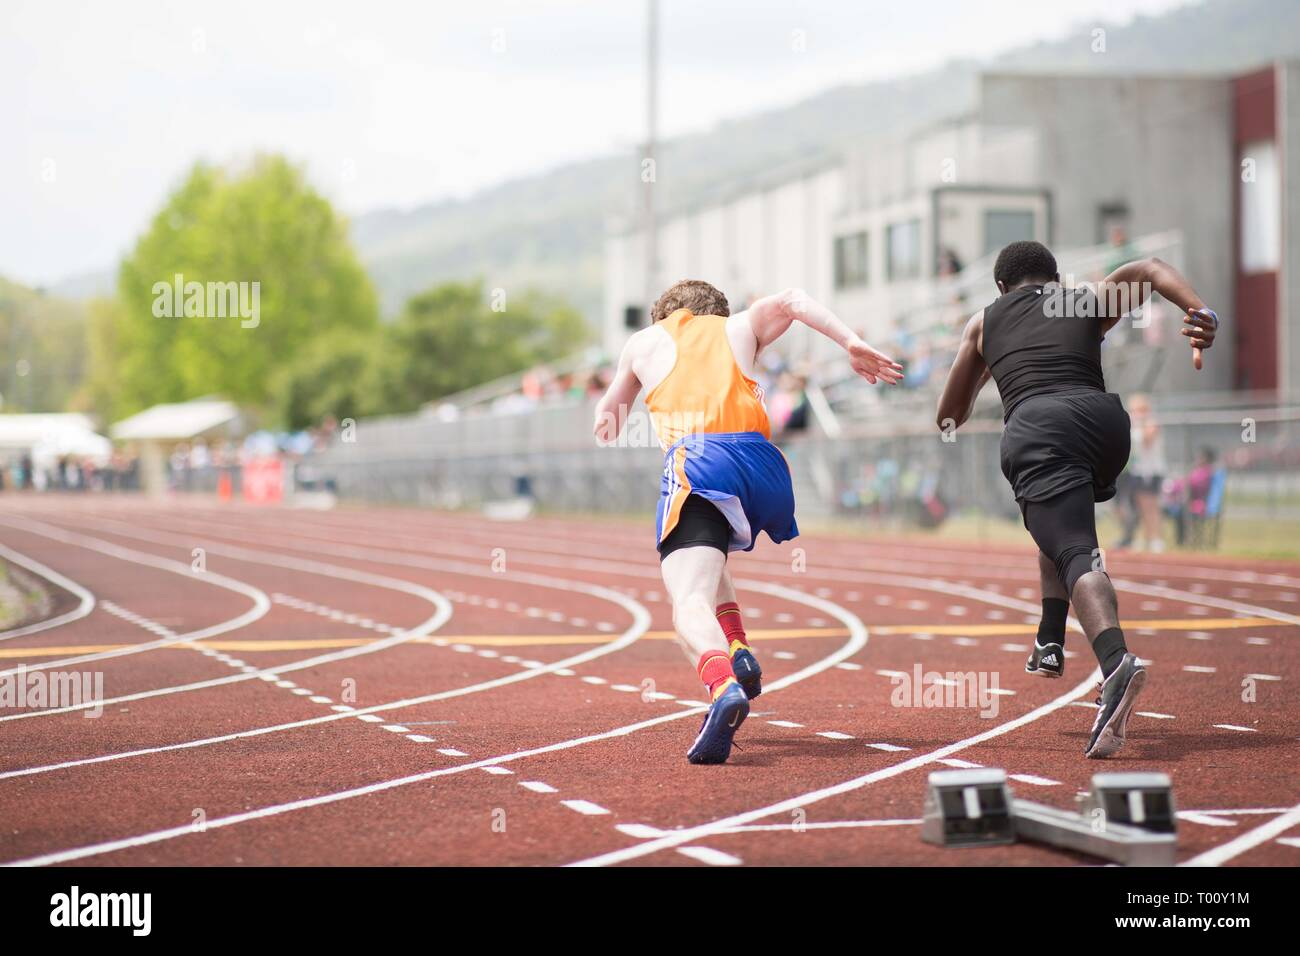 High school students participate in a track and field 100 meter dash race - Stock Image